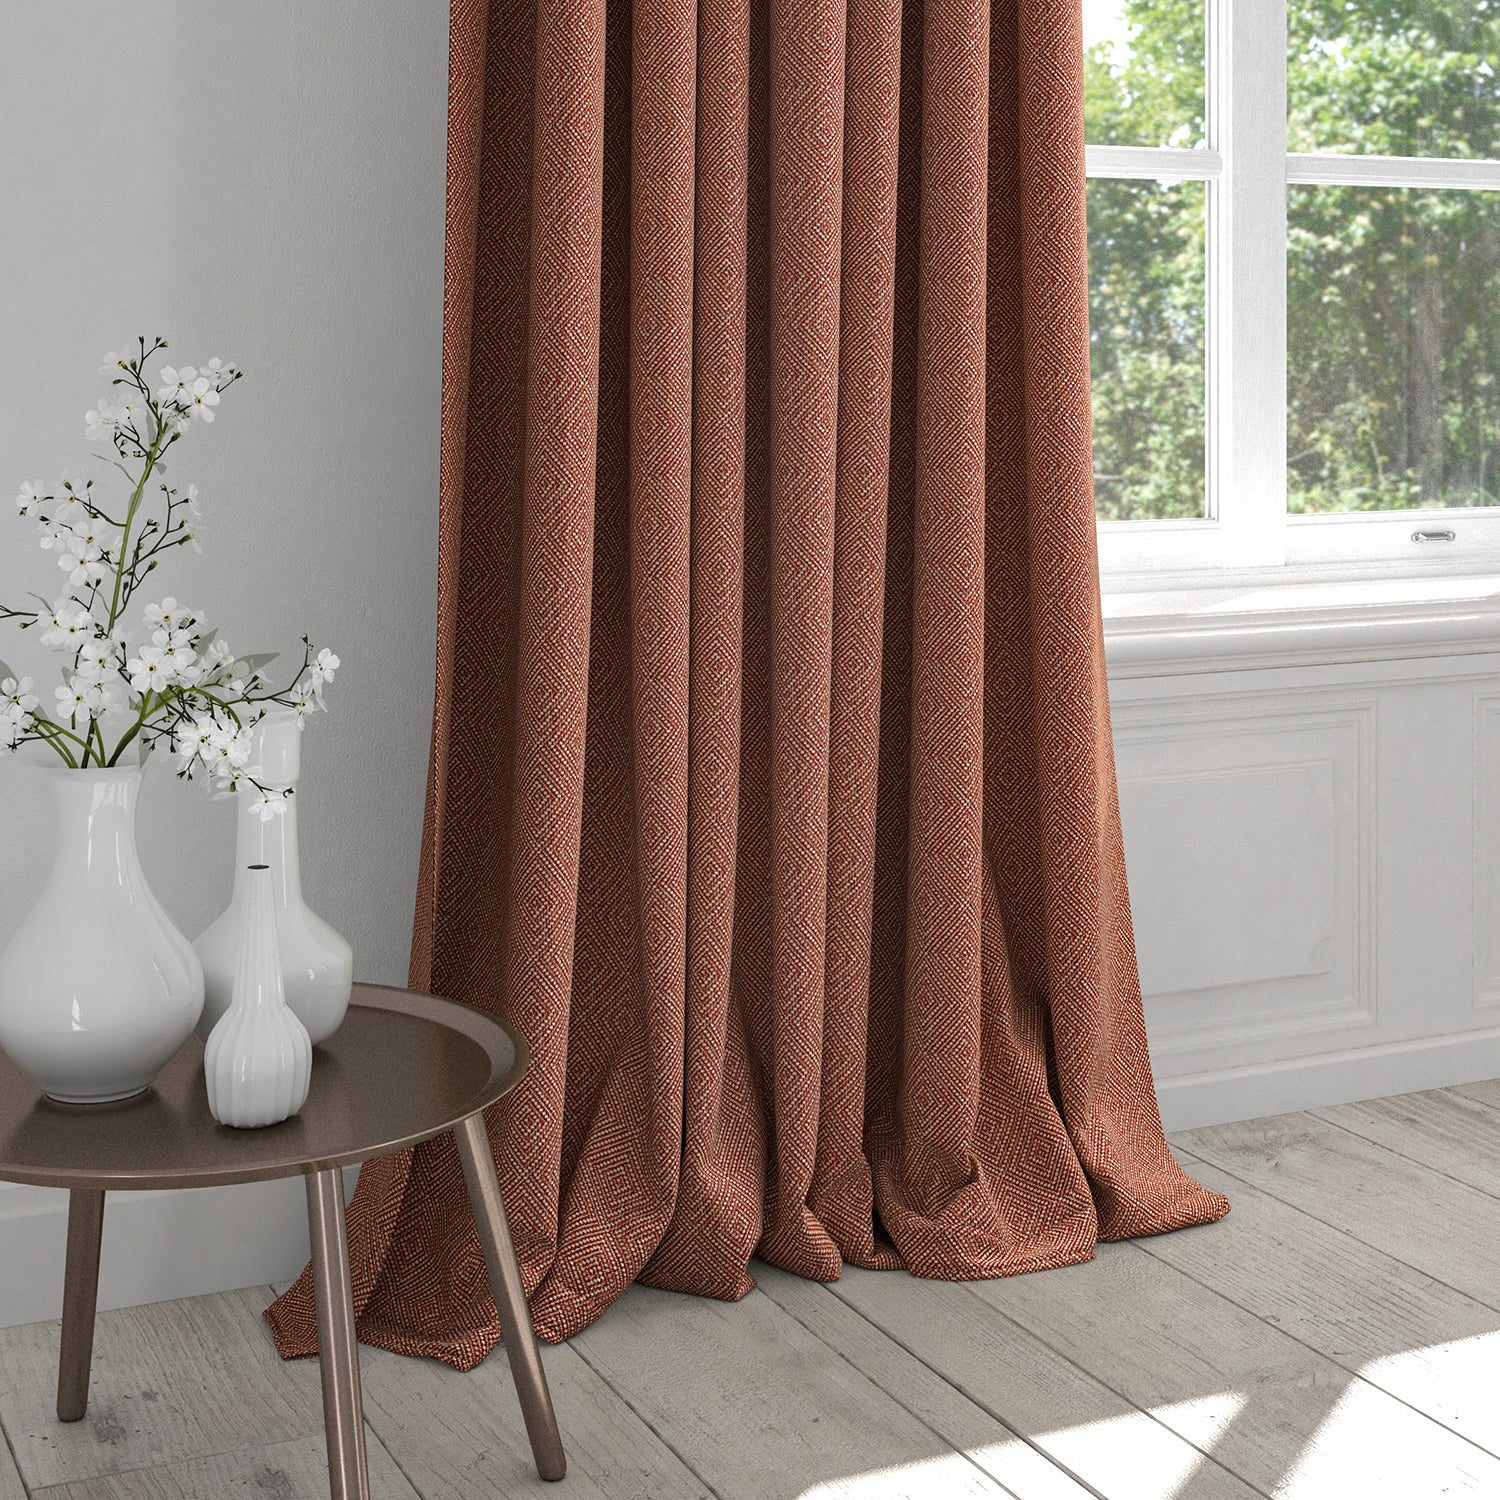 Curtain in a raspberry red fabric with a light neutral woven geometric design